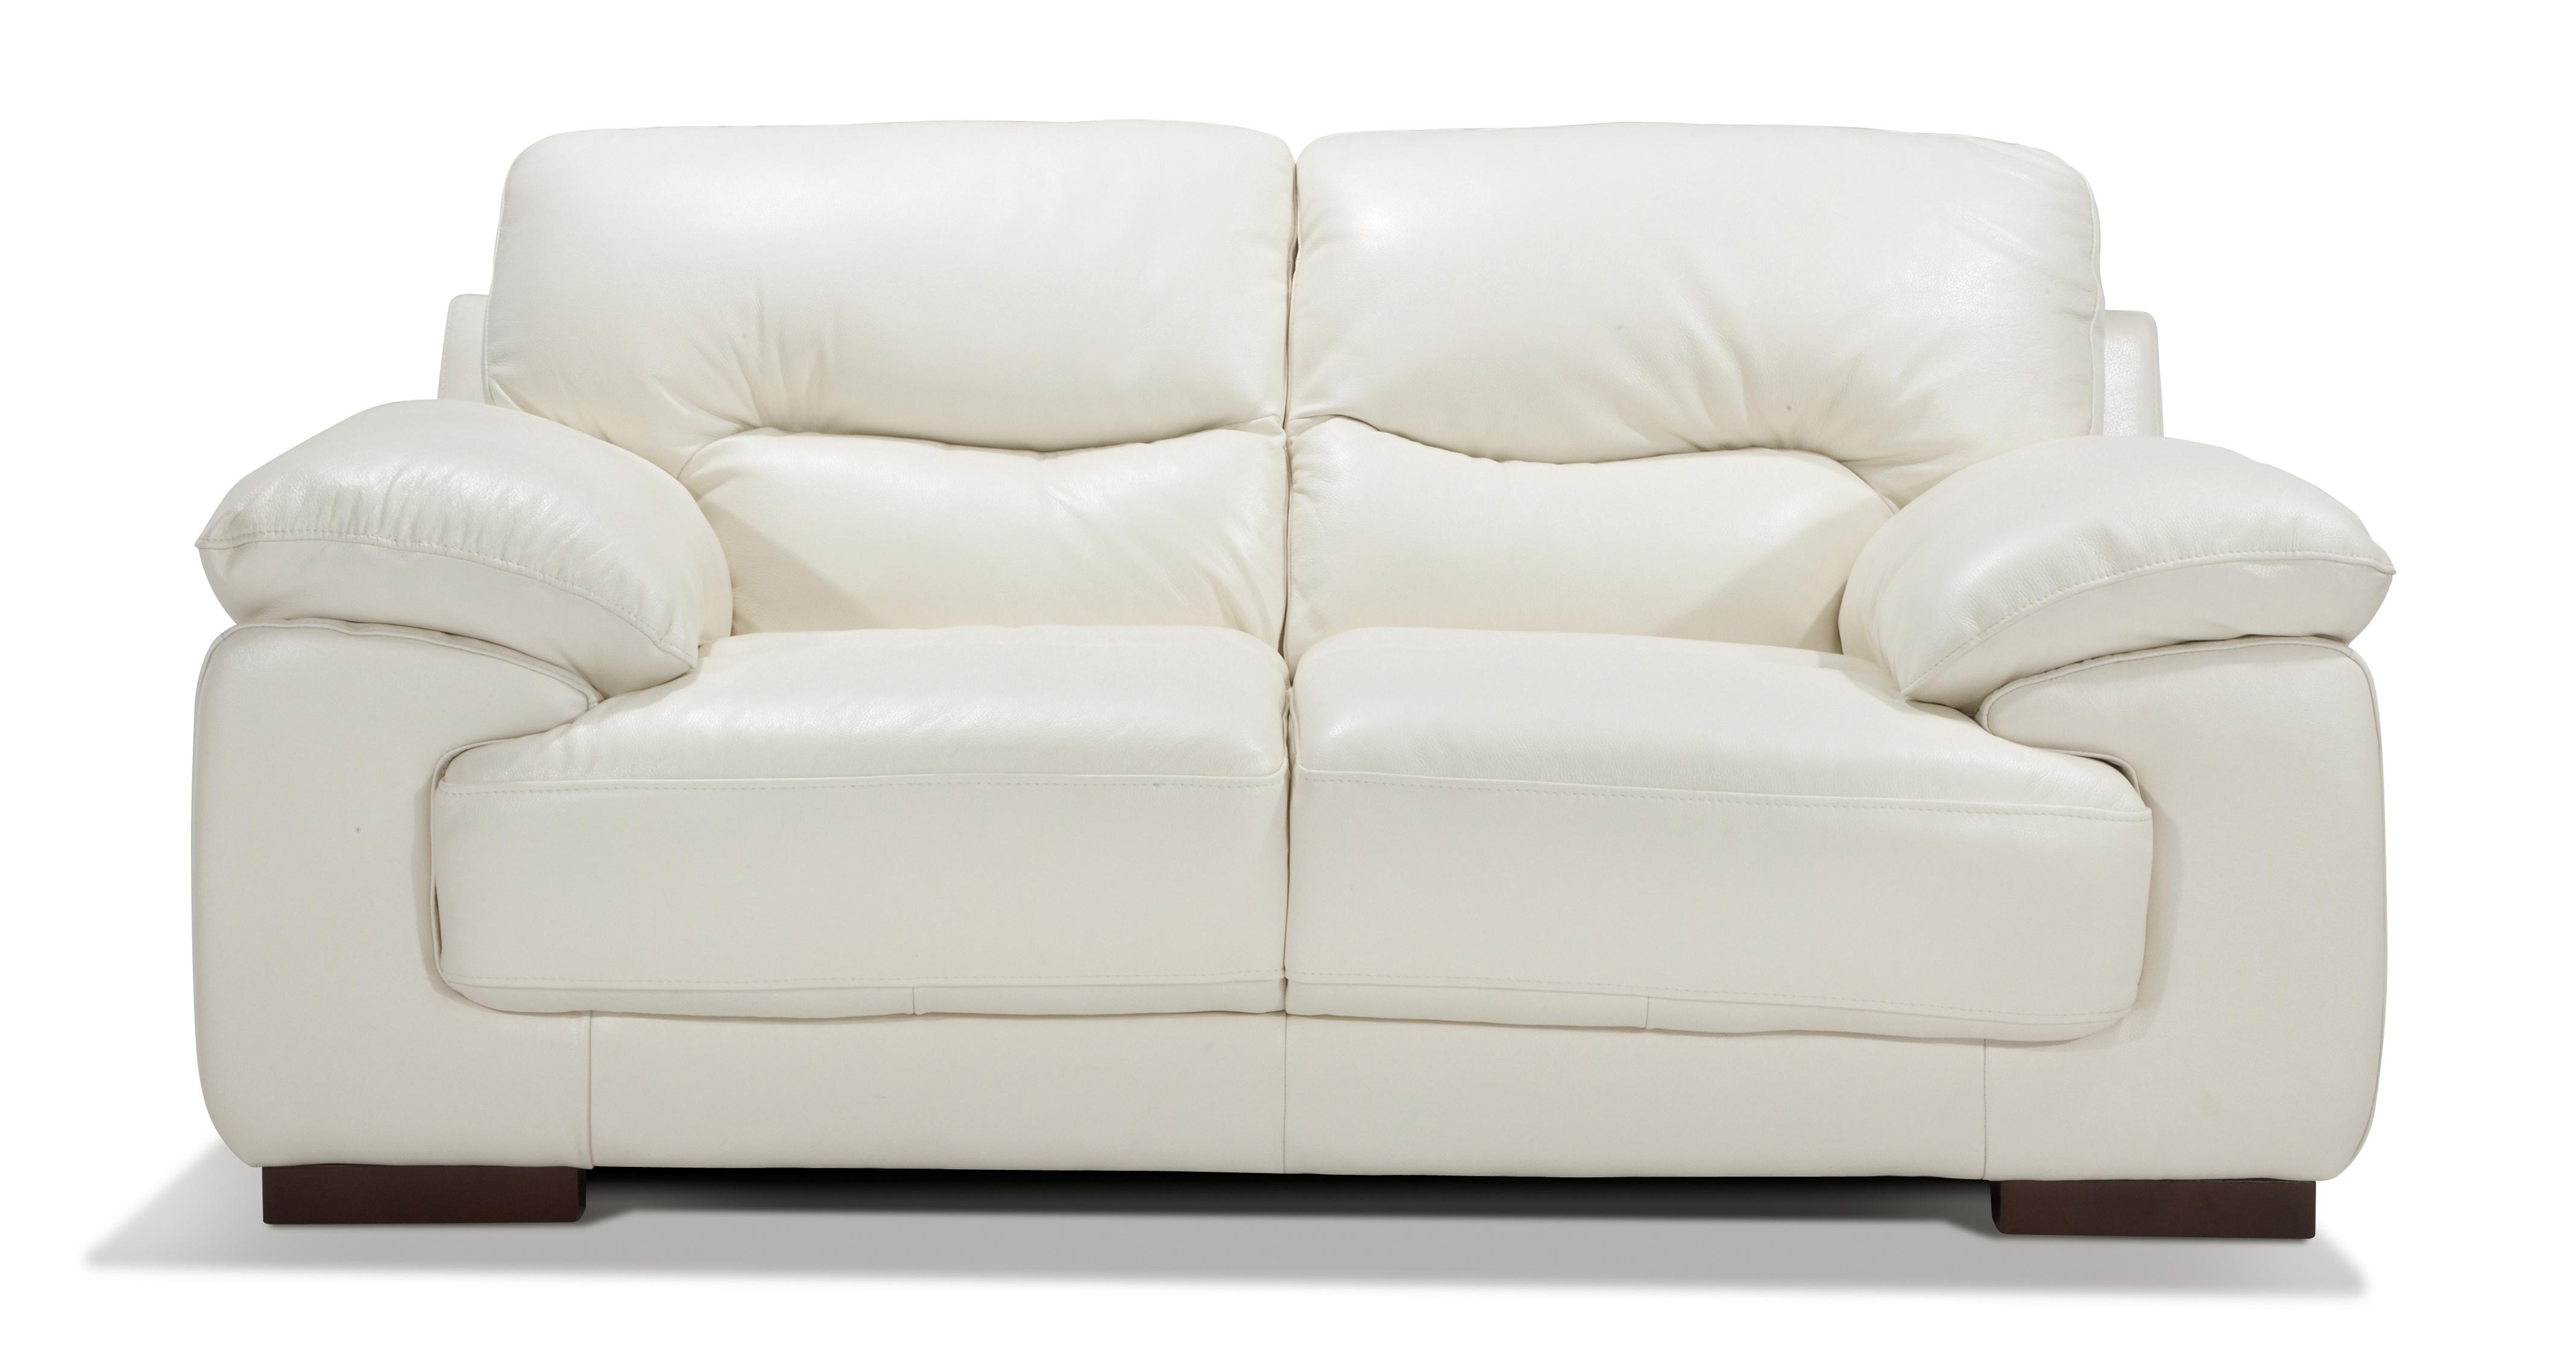 Prime Dazzle 2 Seater Sofa Caraccident5 Cool Chair Designs And Ideas Caraccident5Info